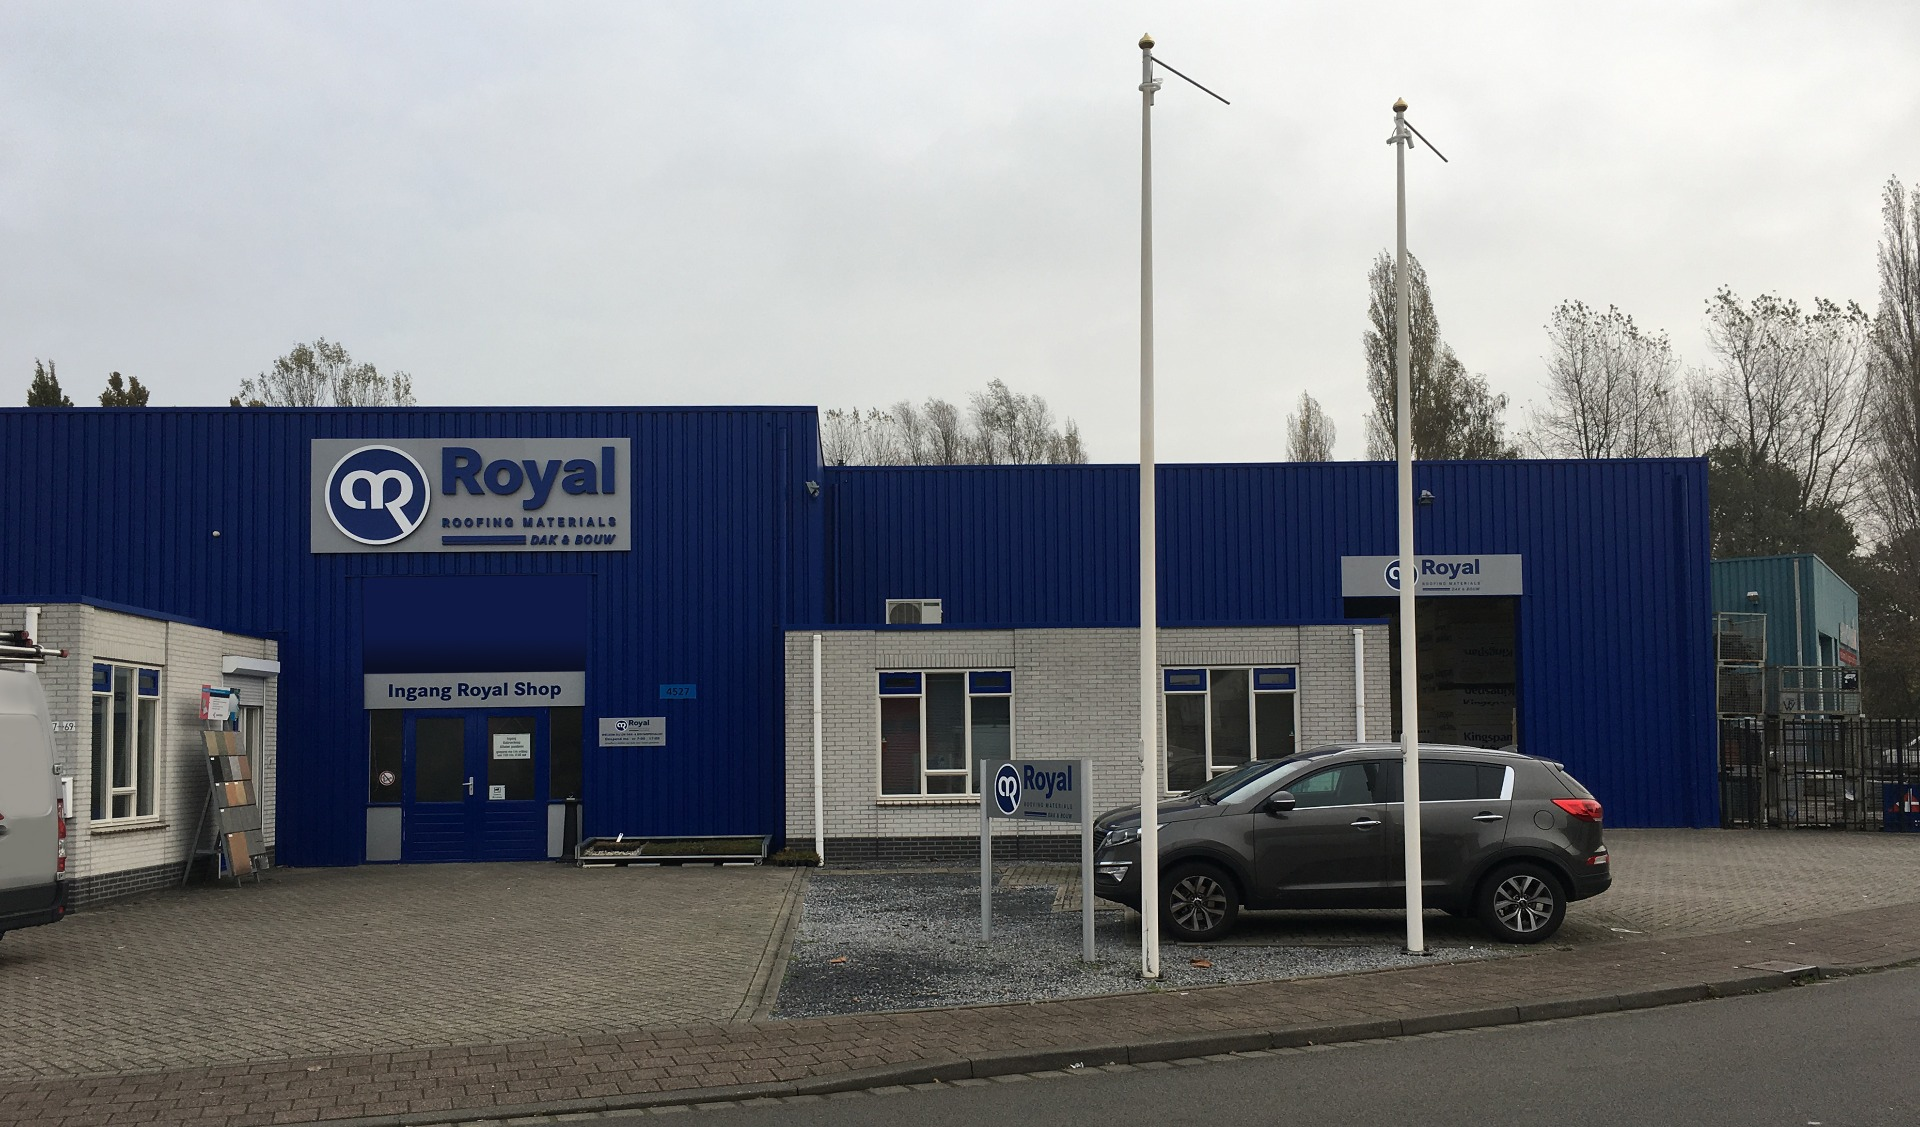 Royal dak & bouw materialen shop Breda